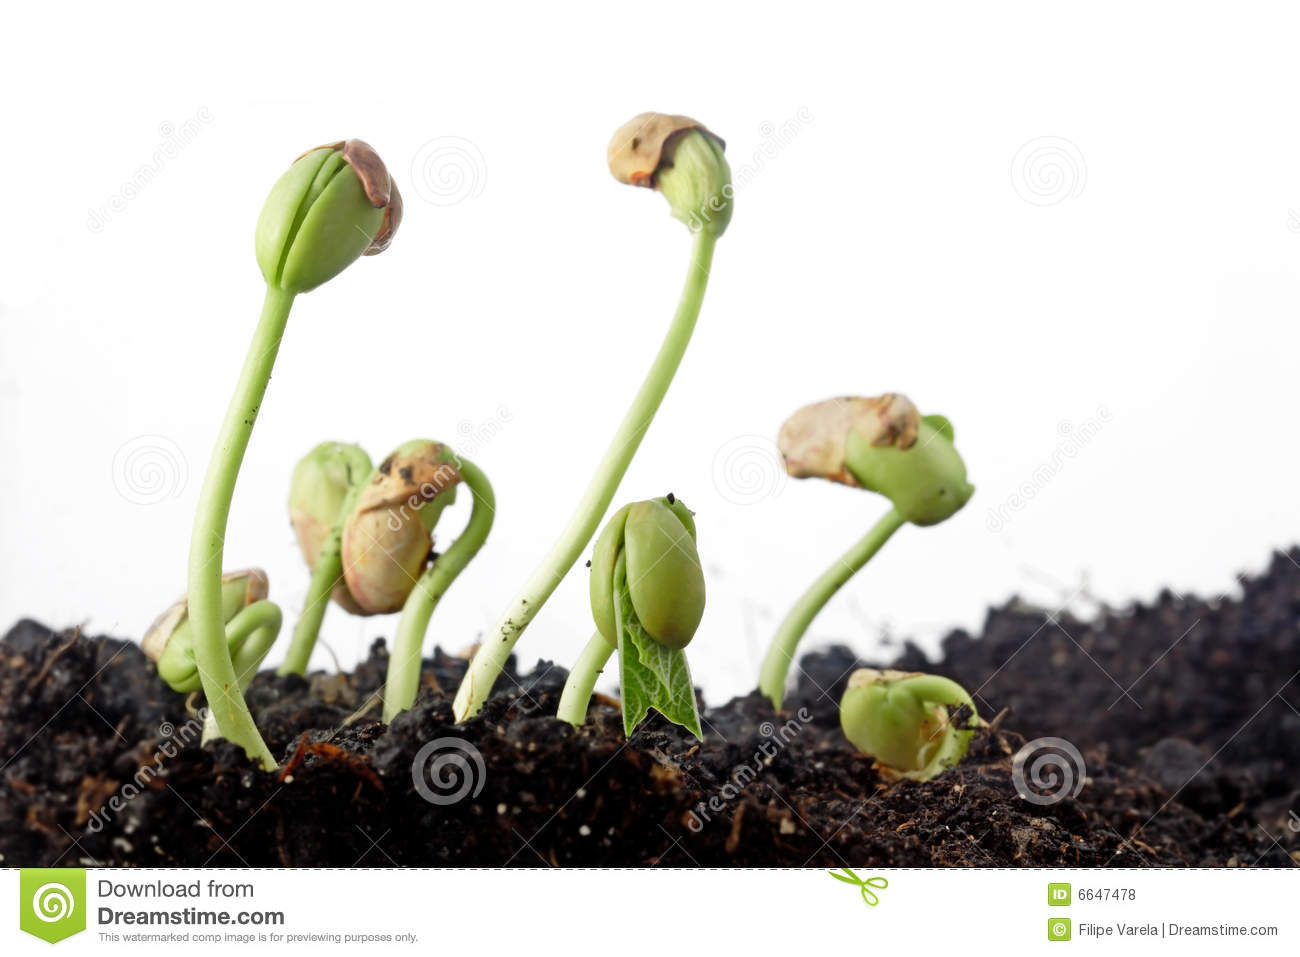 Grow Growing Plant Stock Photo Auto Electrical Wiring Diagram Bean Seed Germination Seeds Image Of Macro